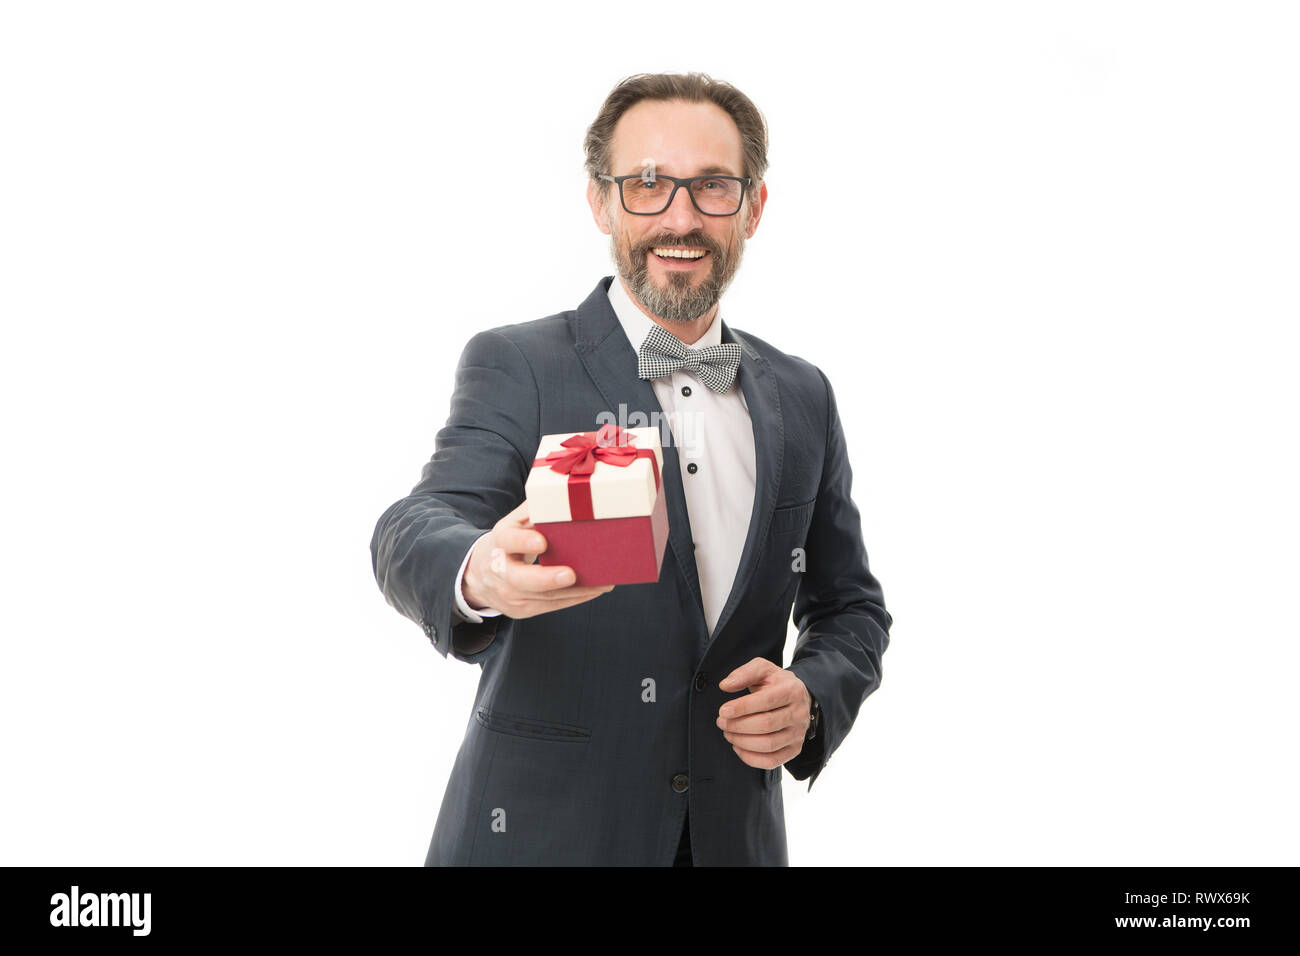 Attentive man. Gift for spouse. Romantic surprise. Man formal suit hold gift box white background. Love and romantic feelings concept. Valentines day gift. Man with beard celebrate valentines day. - Stock Image